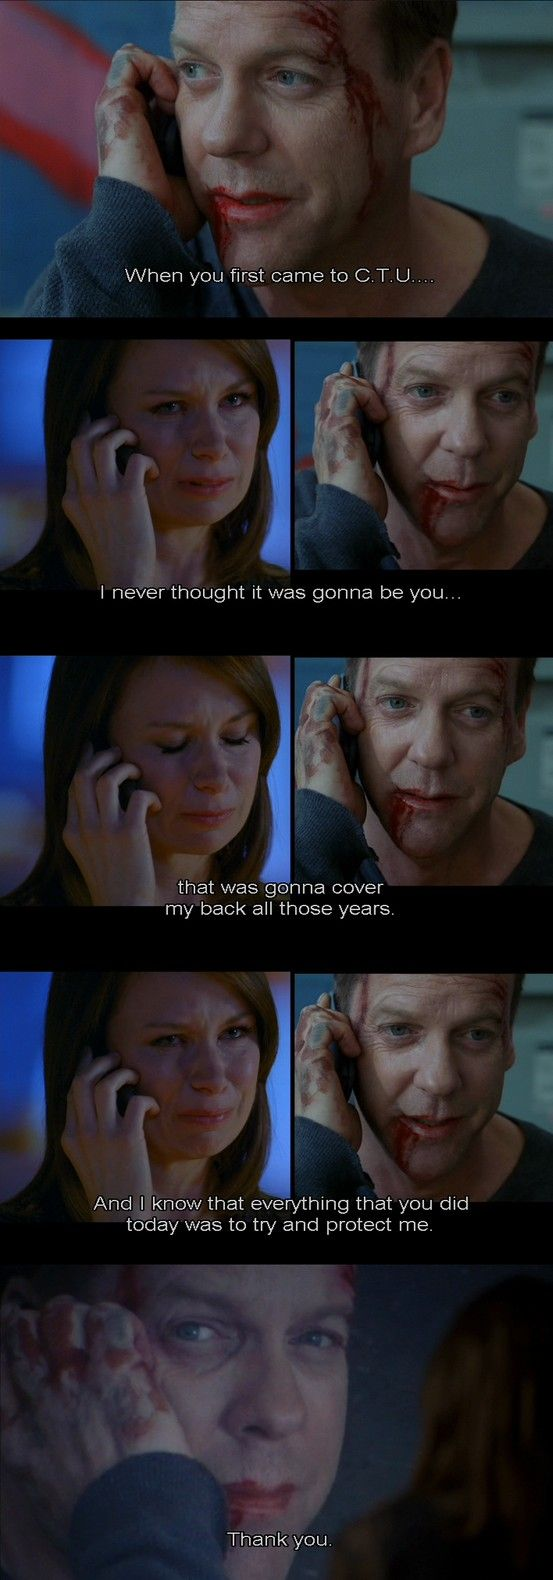 Jack Bauer and Chloe O'Brian; Season 8, the last scene of the series finale.